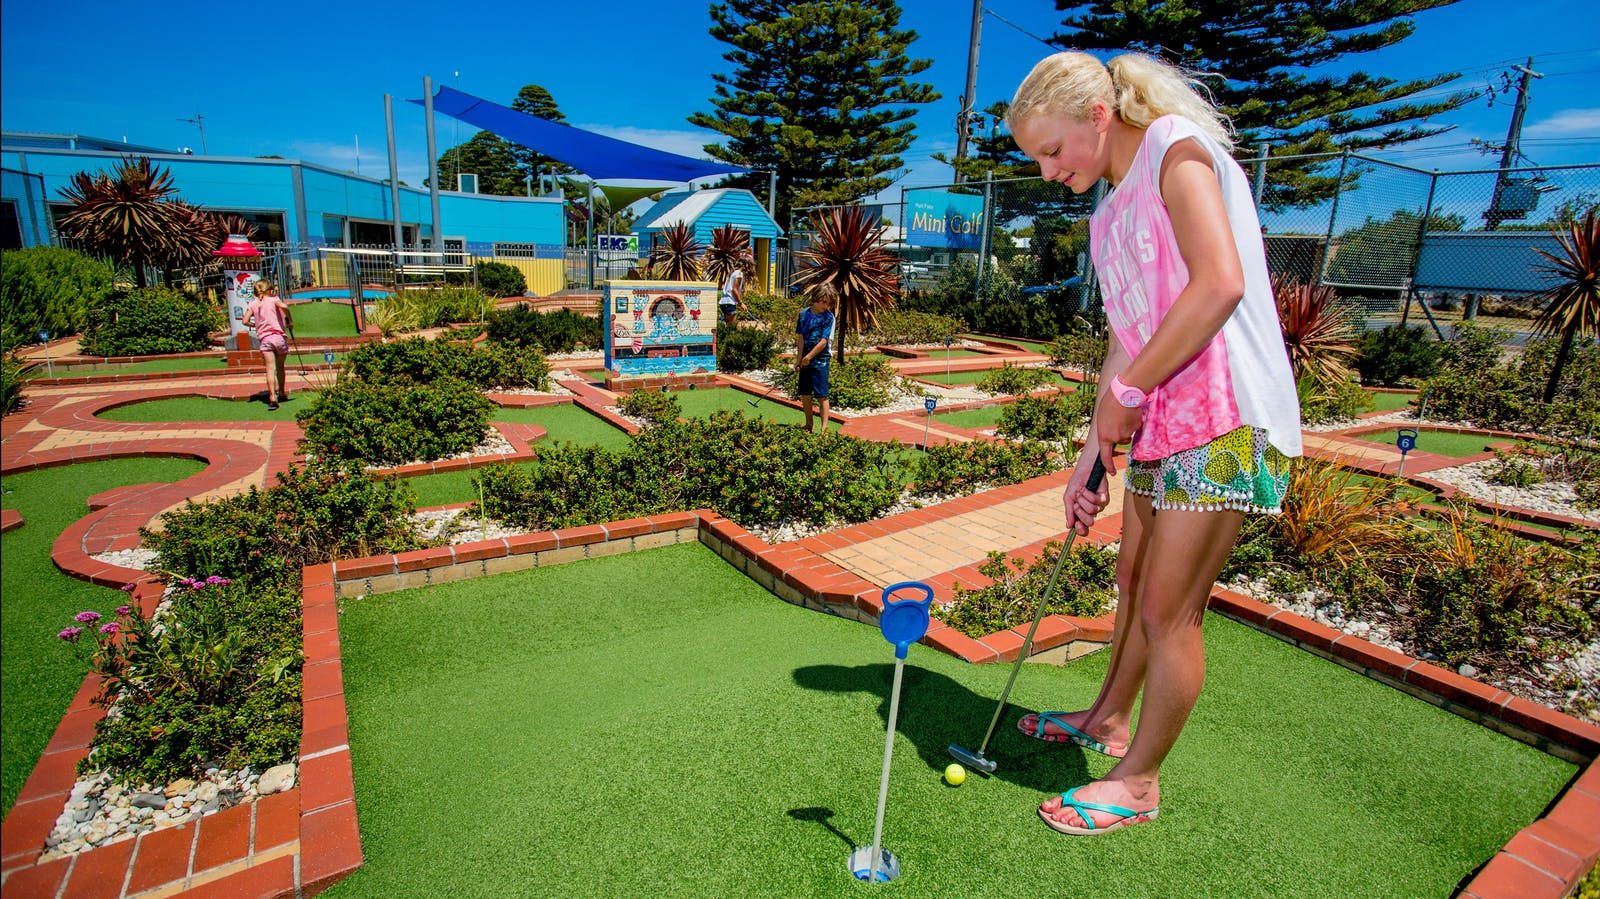 Mini Golf on site